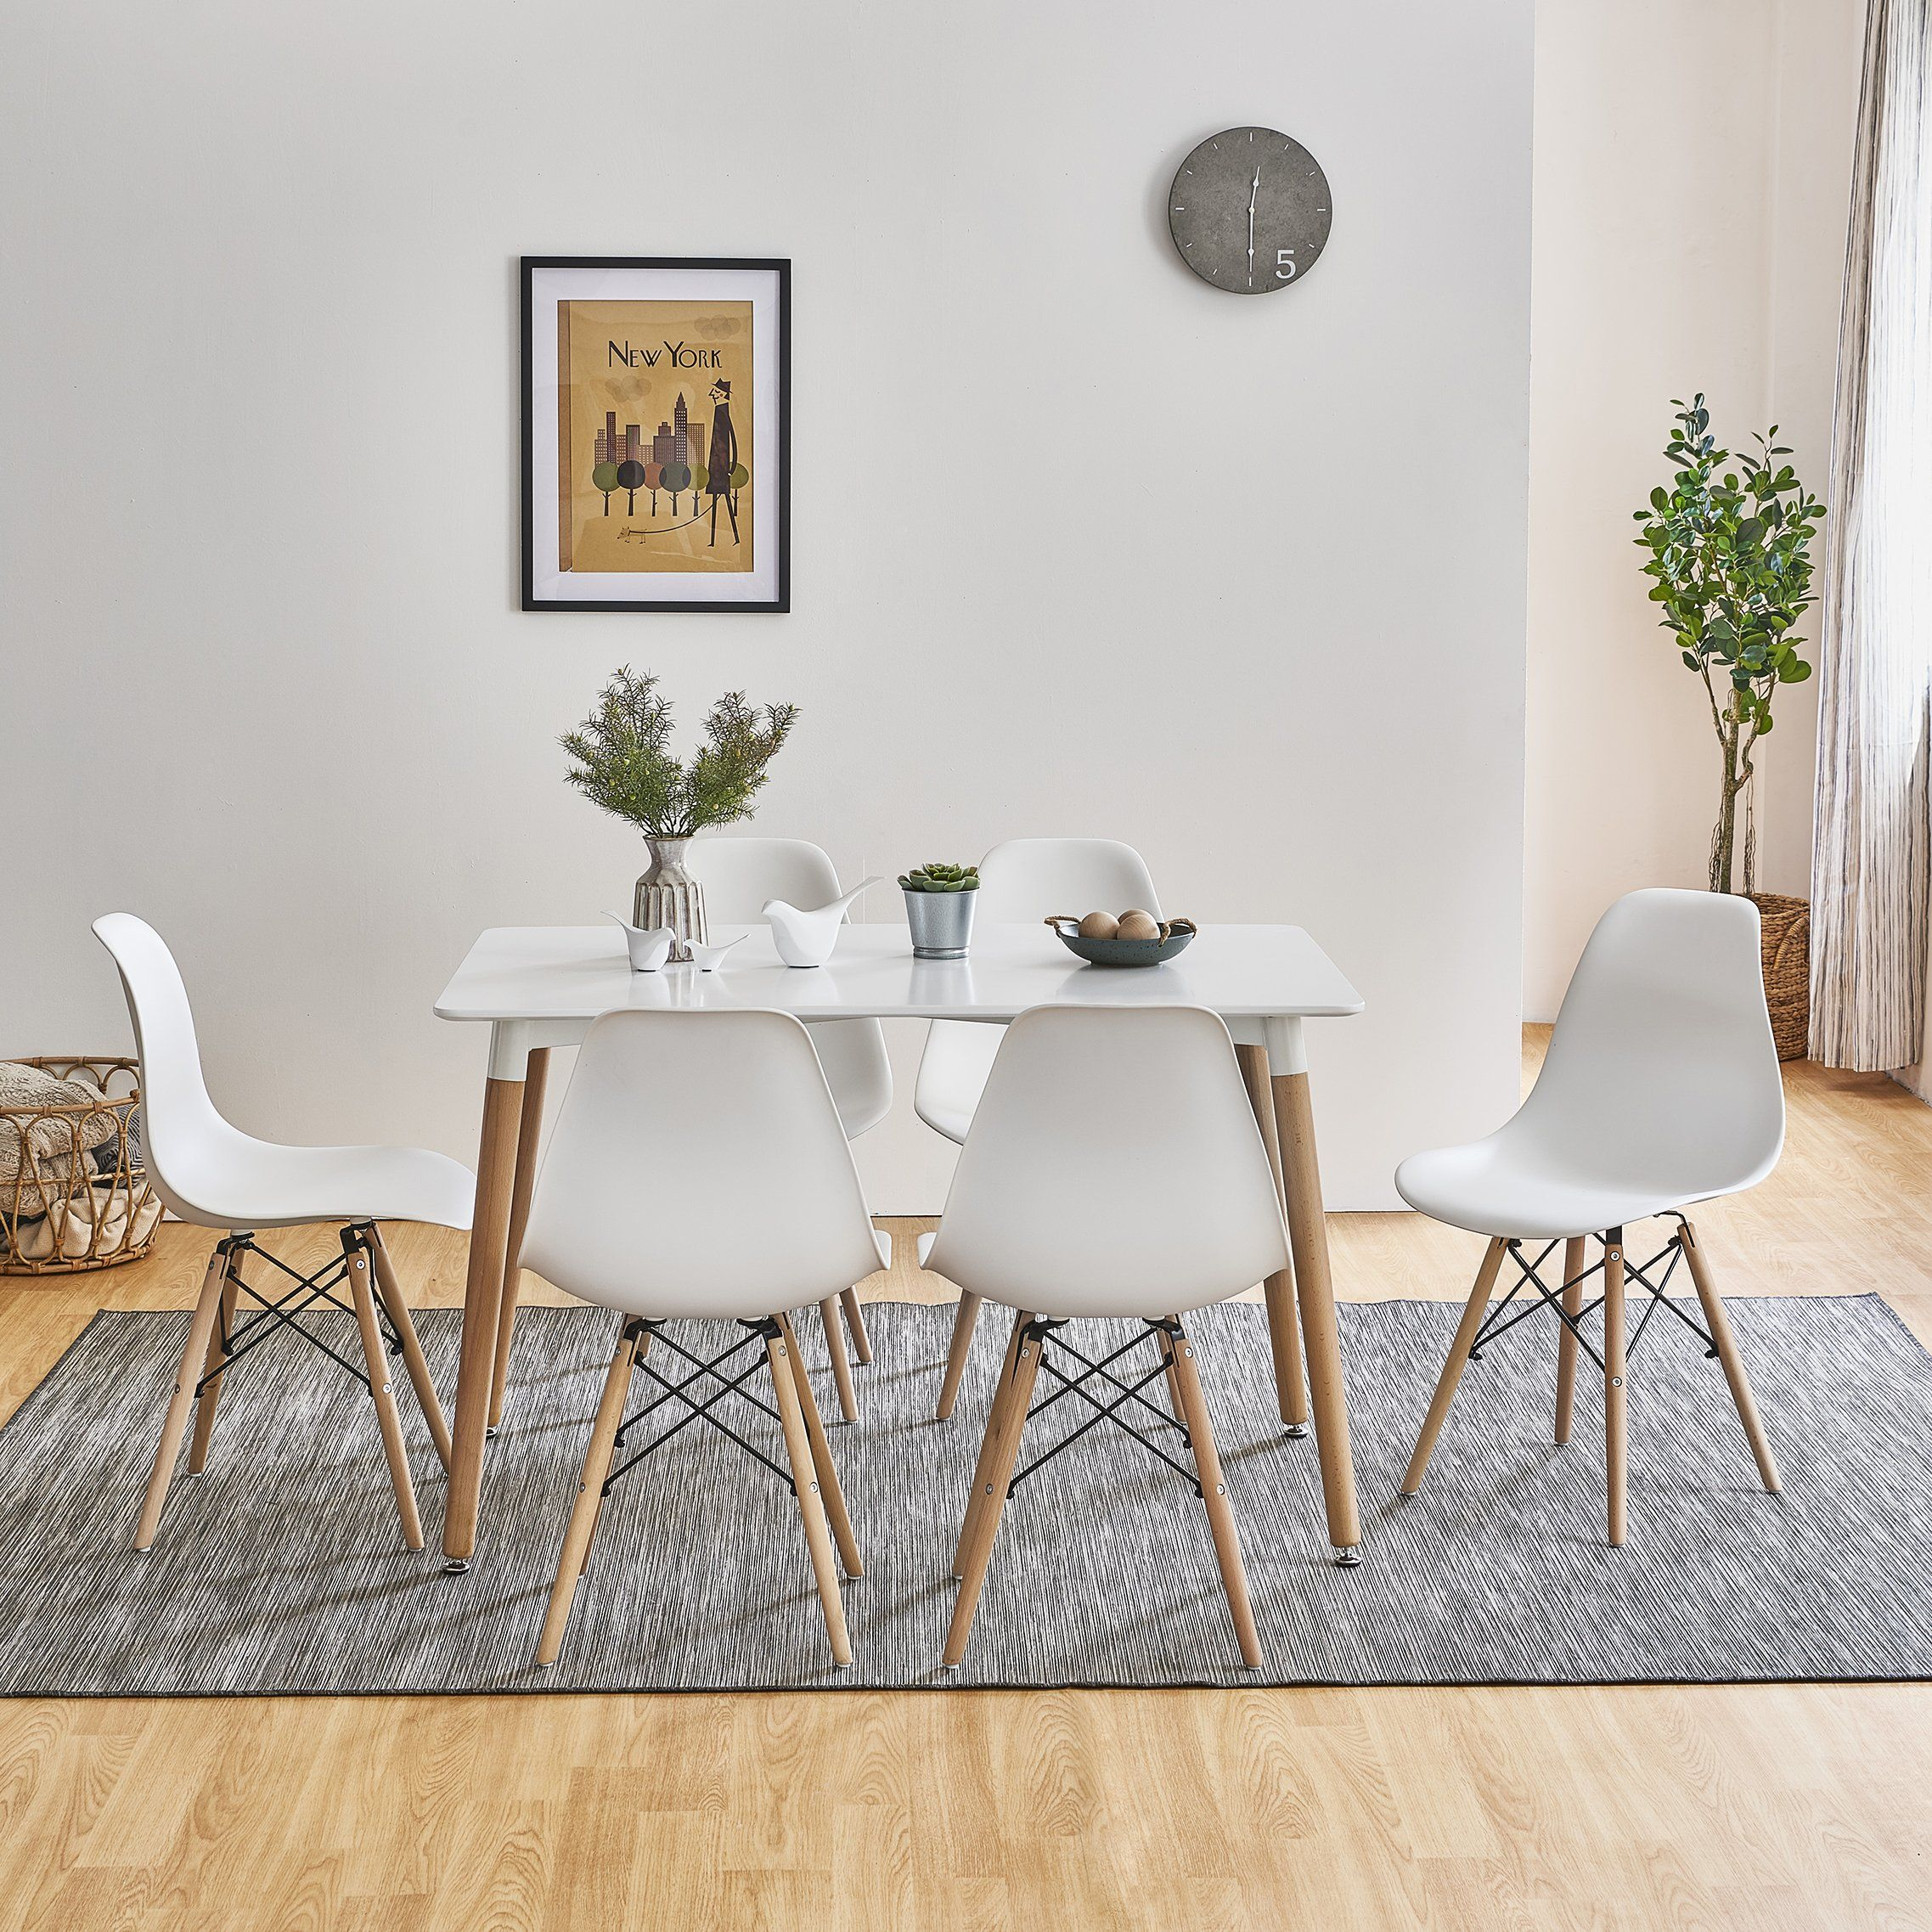 Inge Dining Table And Chairs Set With 6 White Chairs Delivery On Or Laura James